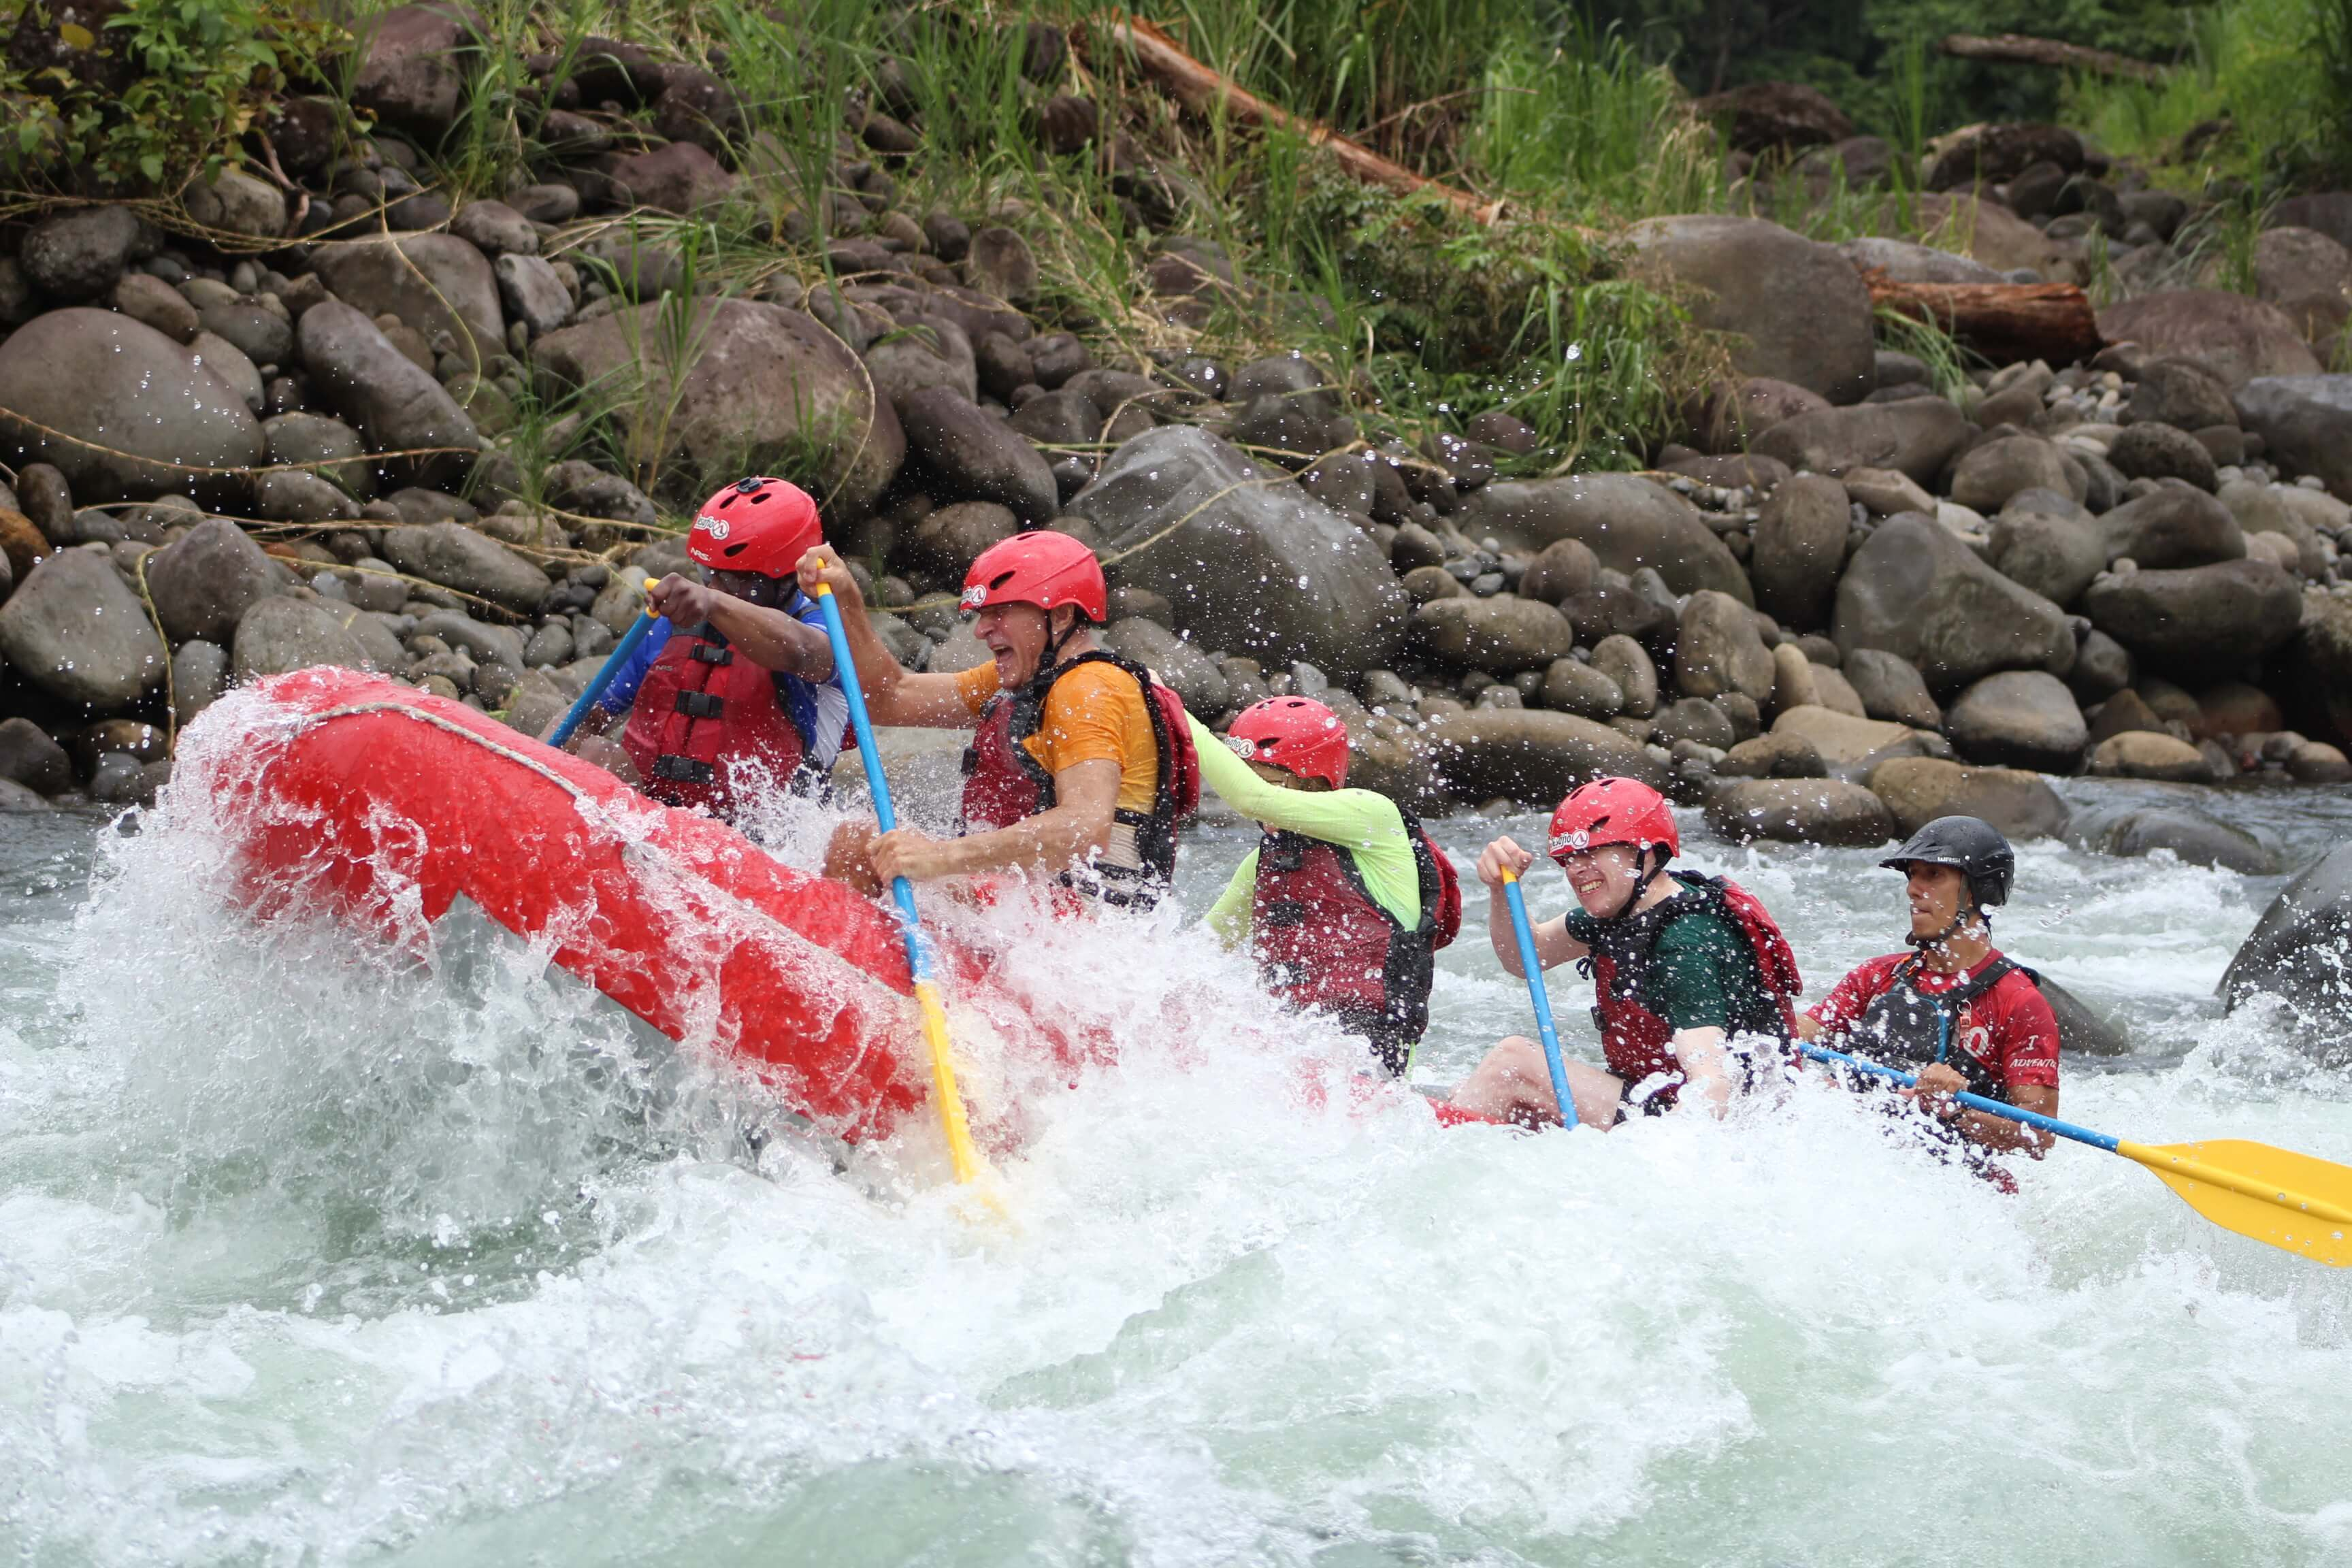 Try white water rafting with a private guide and small group in Costa Rica with Desafio Adventure Company.